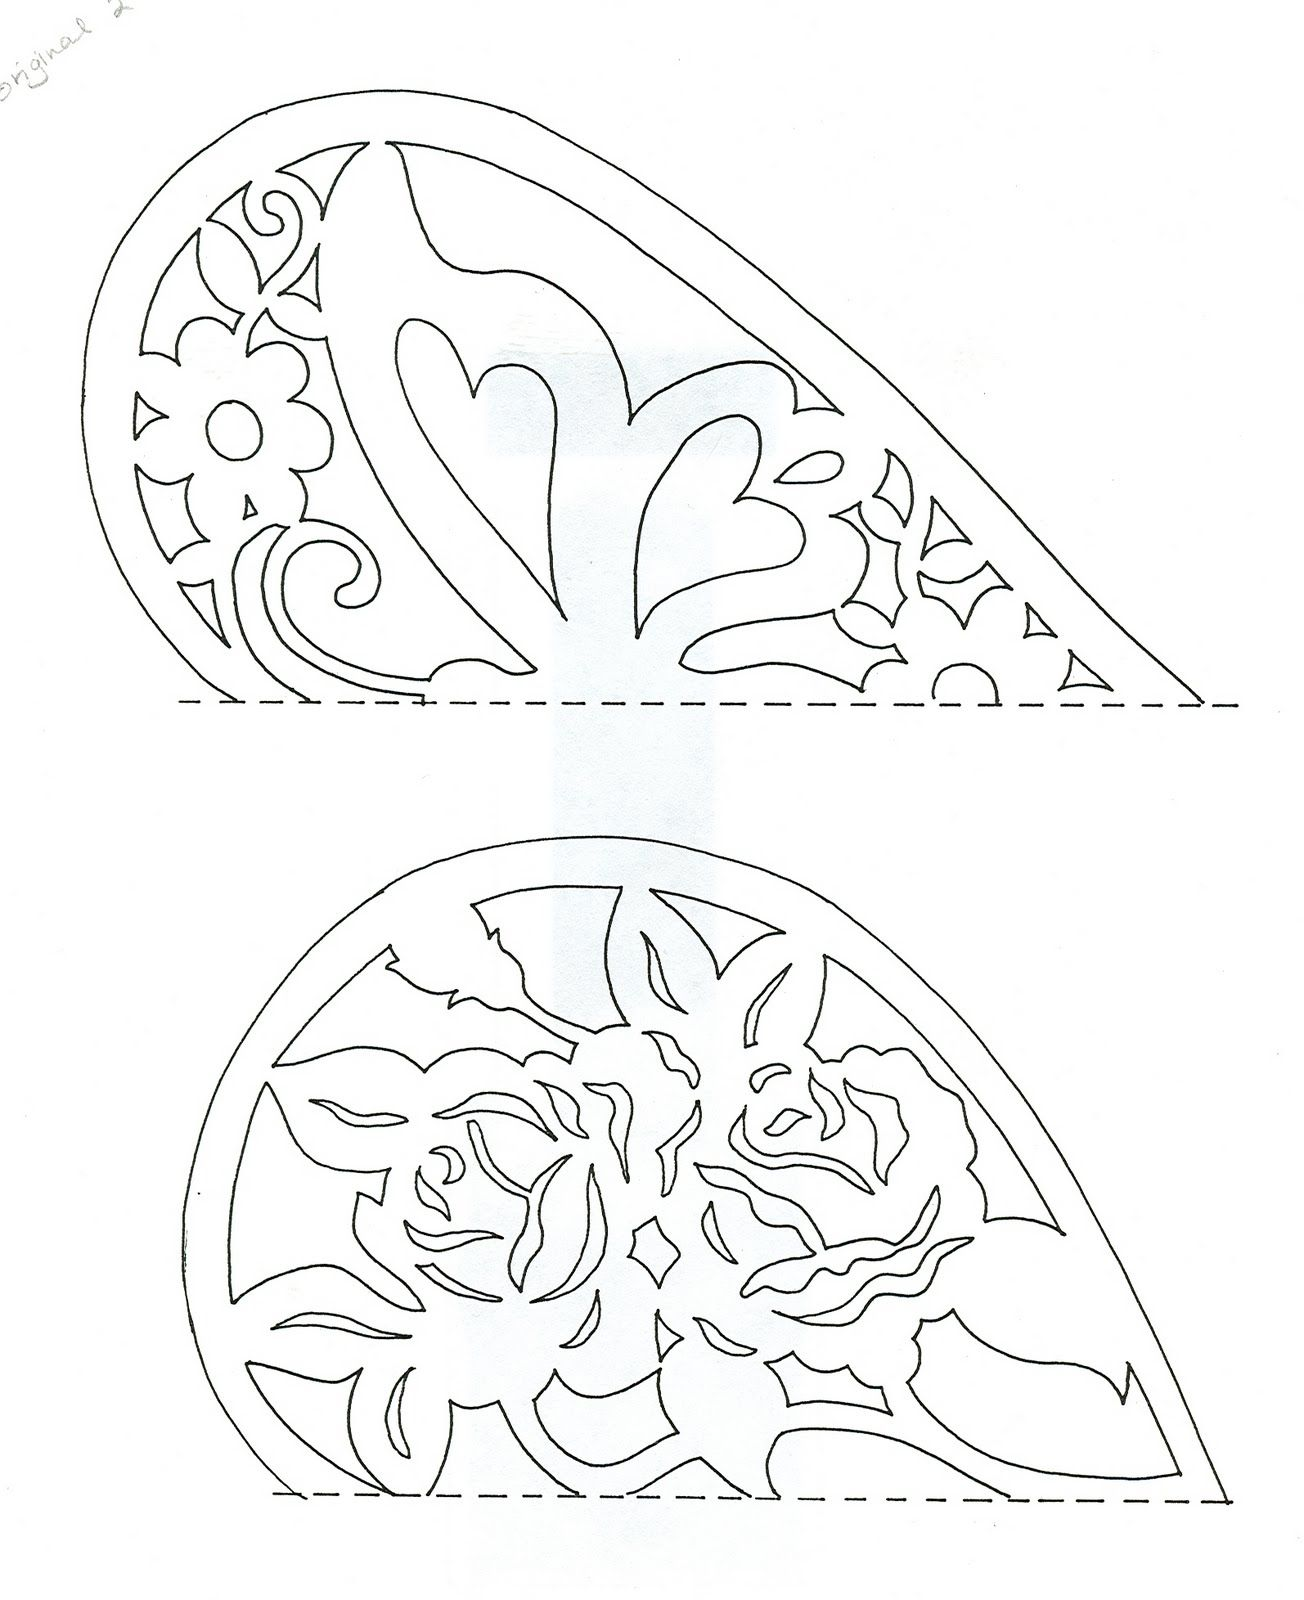 iris folding patterns free printables the top one has the